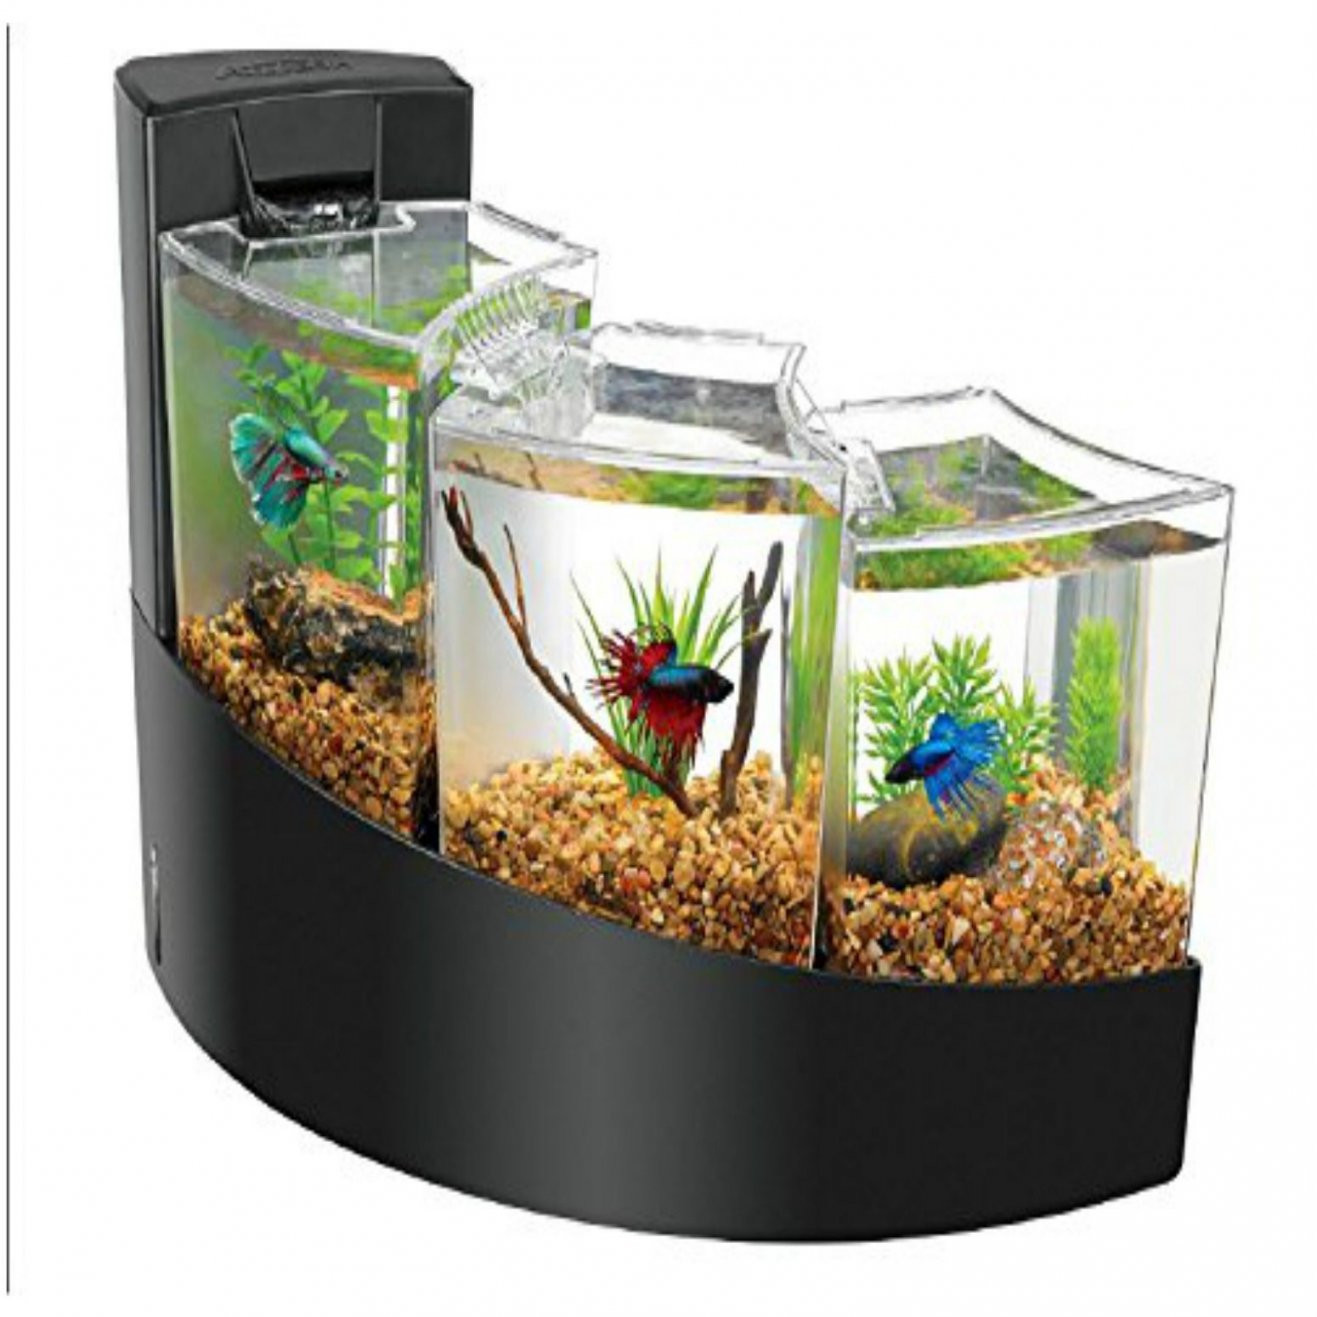 glass vases for betta fish of glass bowl fish tank amazing fish tank home aquarium pinterest throughout glass bowl fish tank amazing fish tank home aquarium pinterest